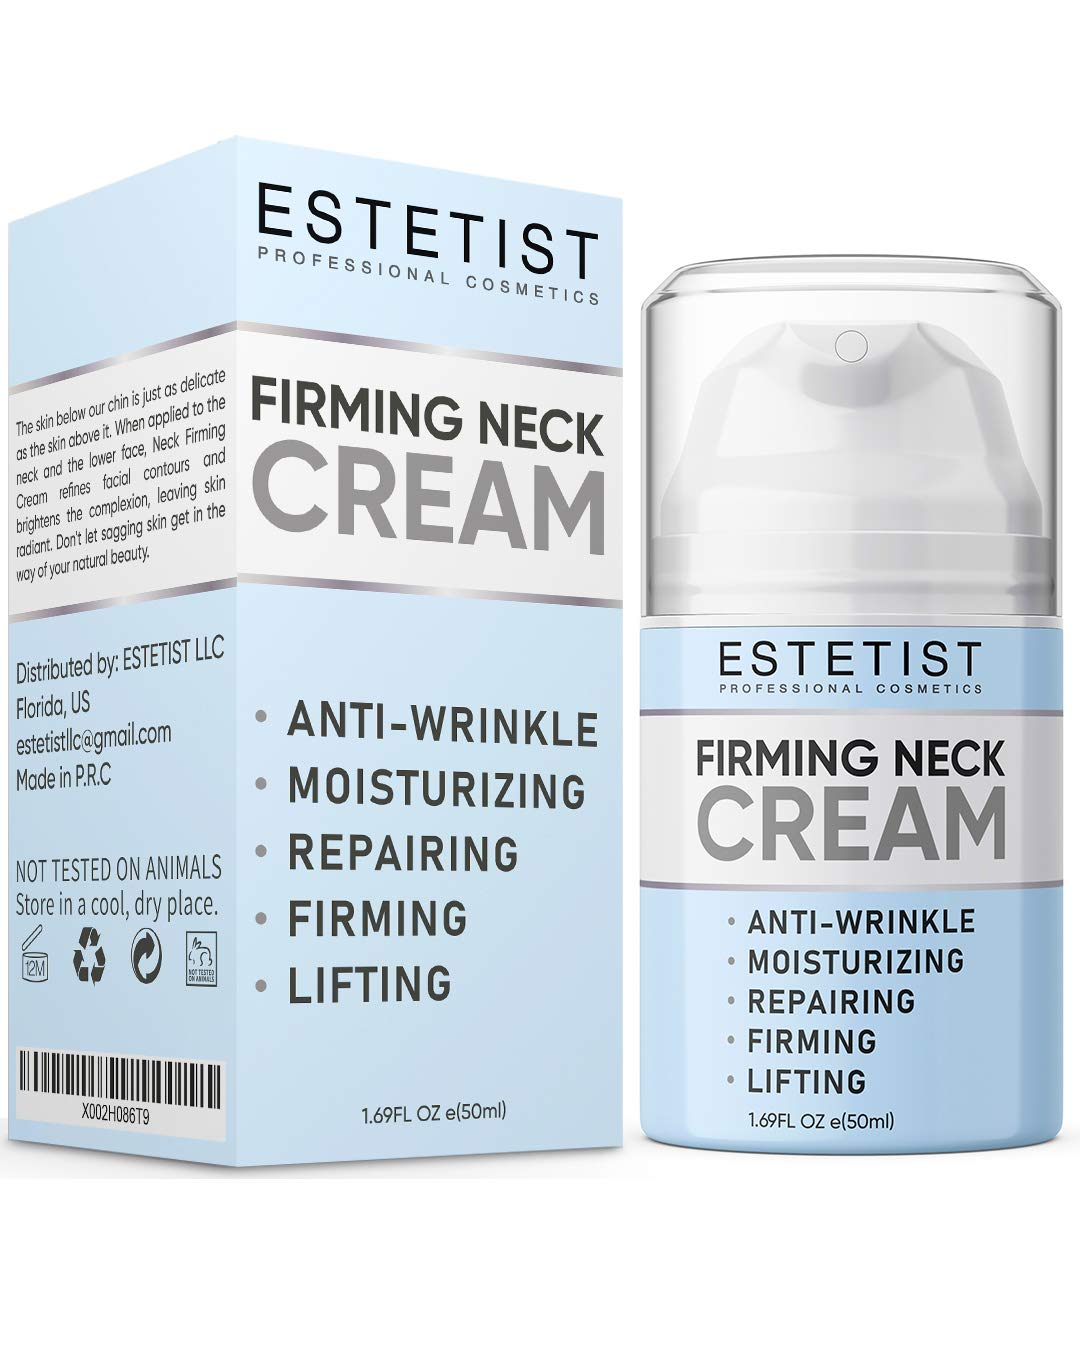 Neck Firming Cream for Tightening & Lifting Sagging Skin - Double Chin Reducer - Anti Wrinkle Anti Aging Treatment for Neck & Décolleté - Crepe Skin Repair for Chest - With Vitamin C & Coconut Oil